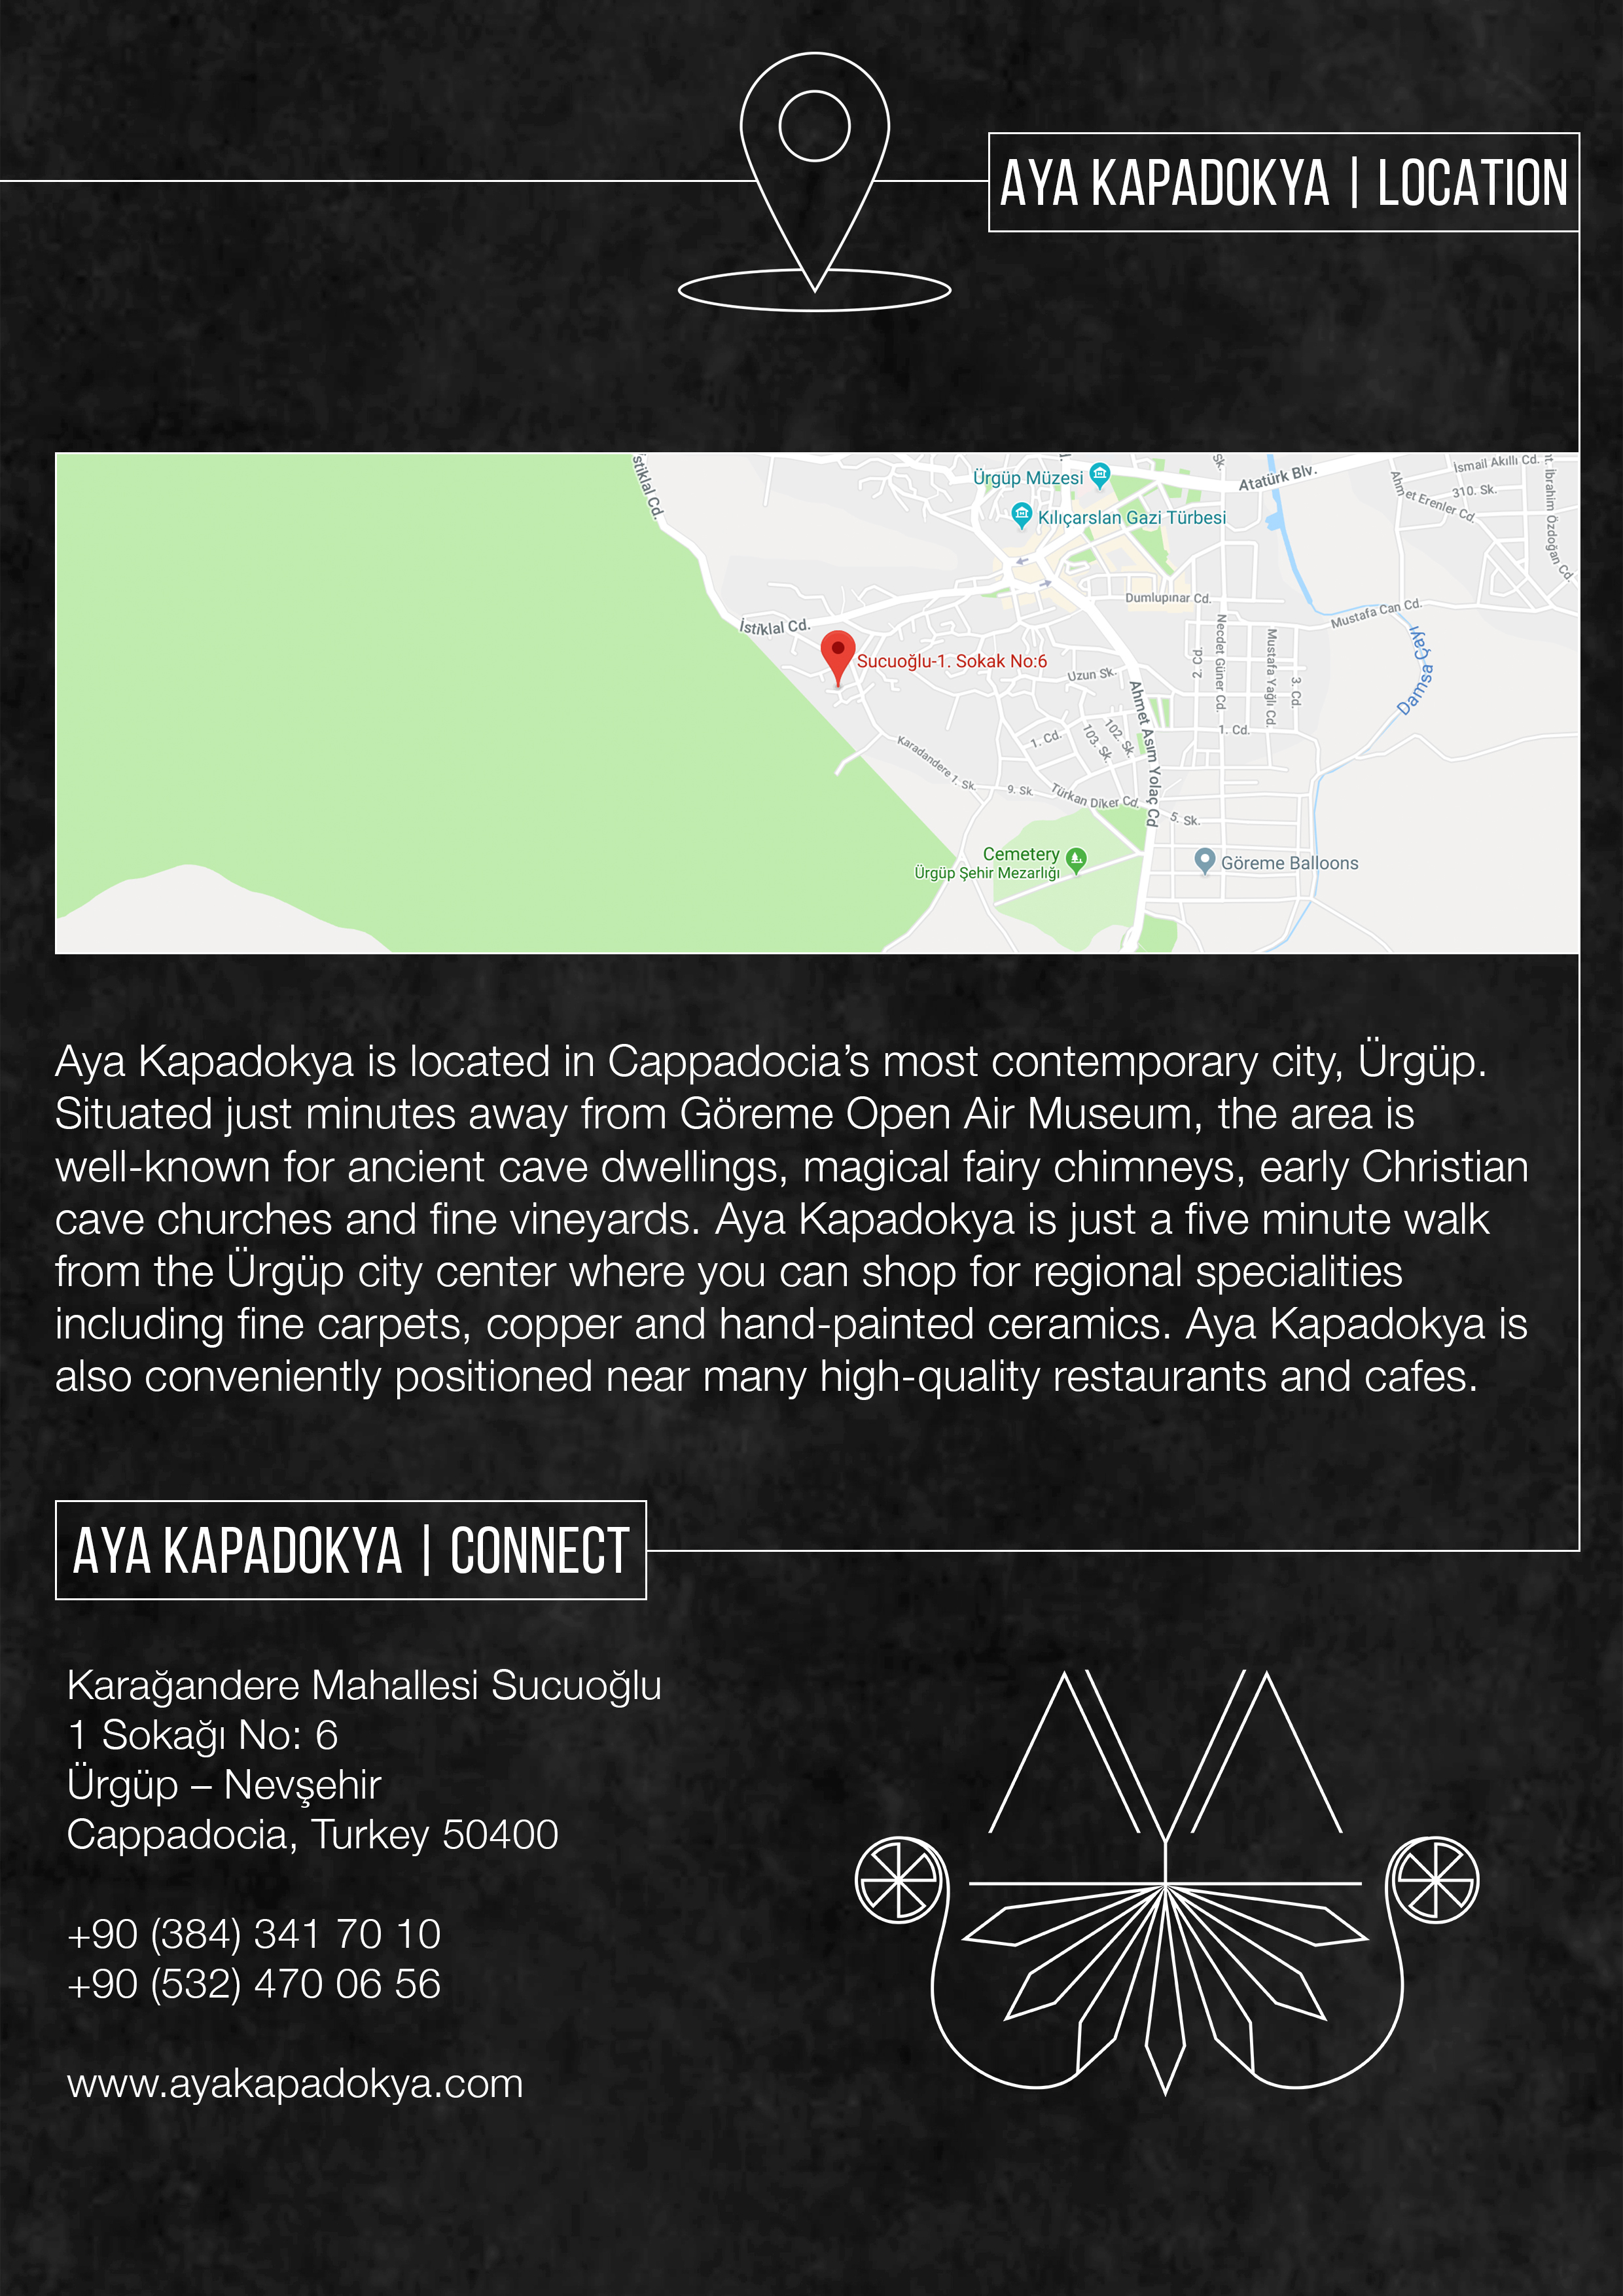 aya-kapadokya-infographic-fact-sheet-0006